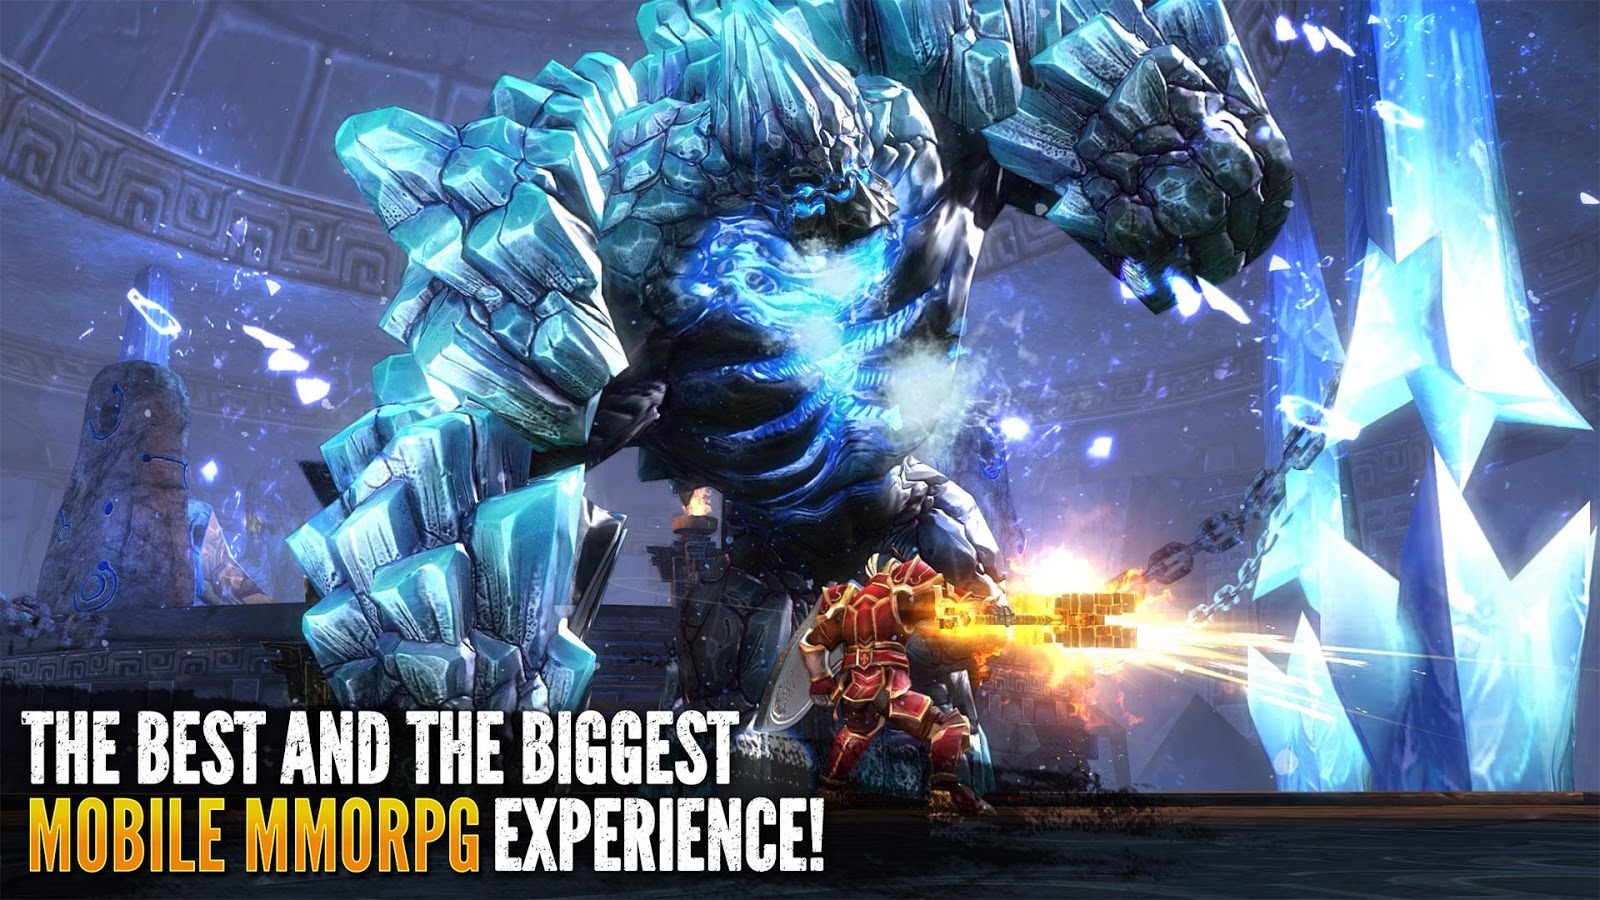 Gameloft's Order & Chaos 2 Is An Open World MMORPG Where You Can Go